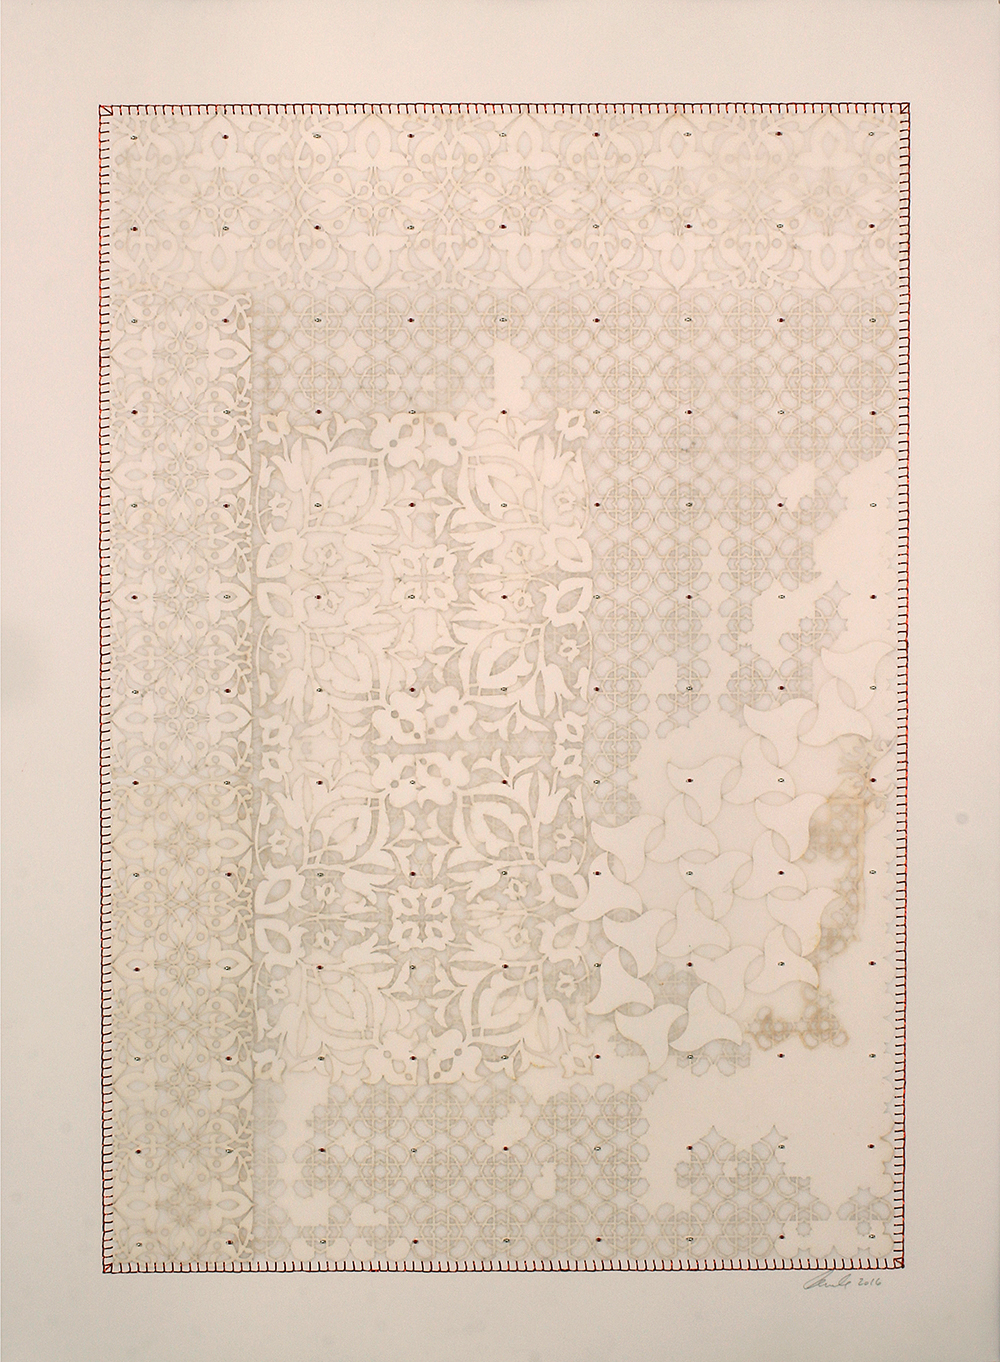 "Antique Lace 2   Mixed media on paper (Laser-cut patterns on paper with mylar, embroidery and beads)  26"" x 20"" 2016  Walking With My Mother's Shadow-Artist Statement"